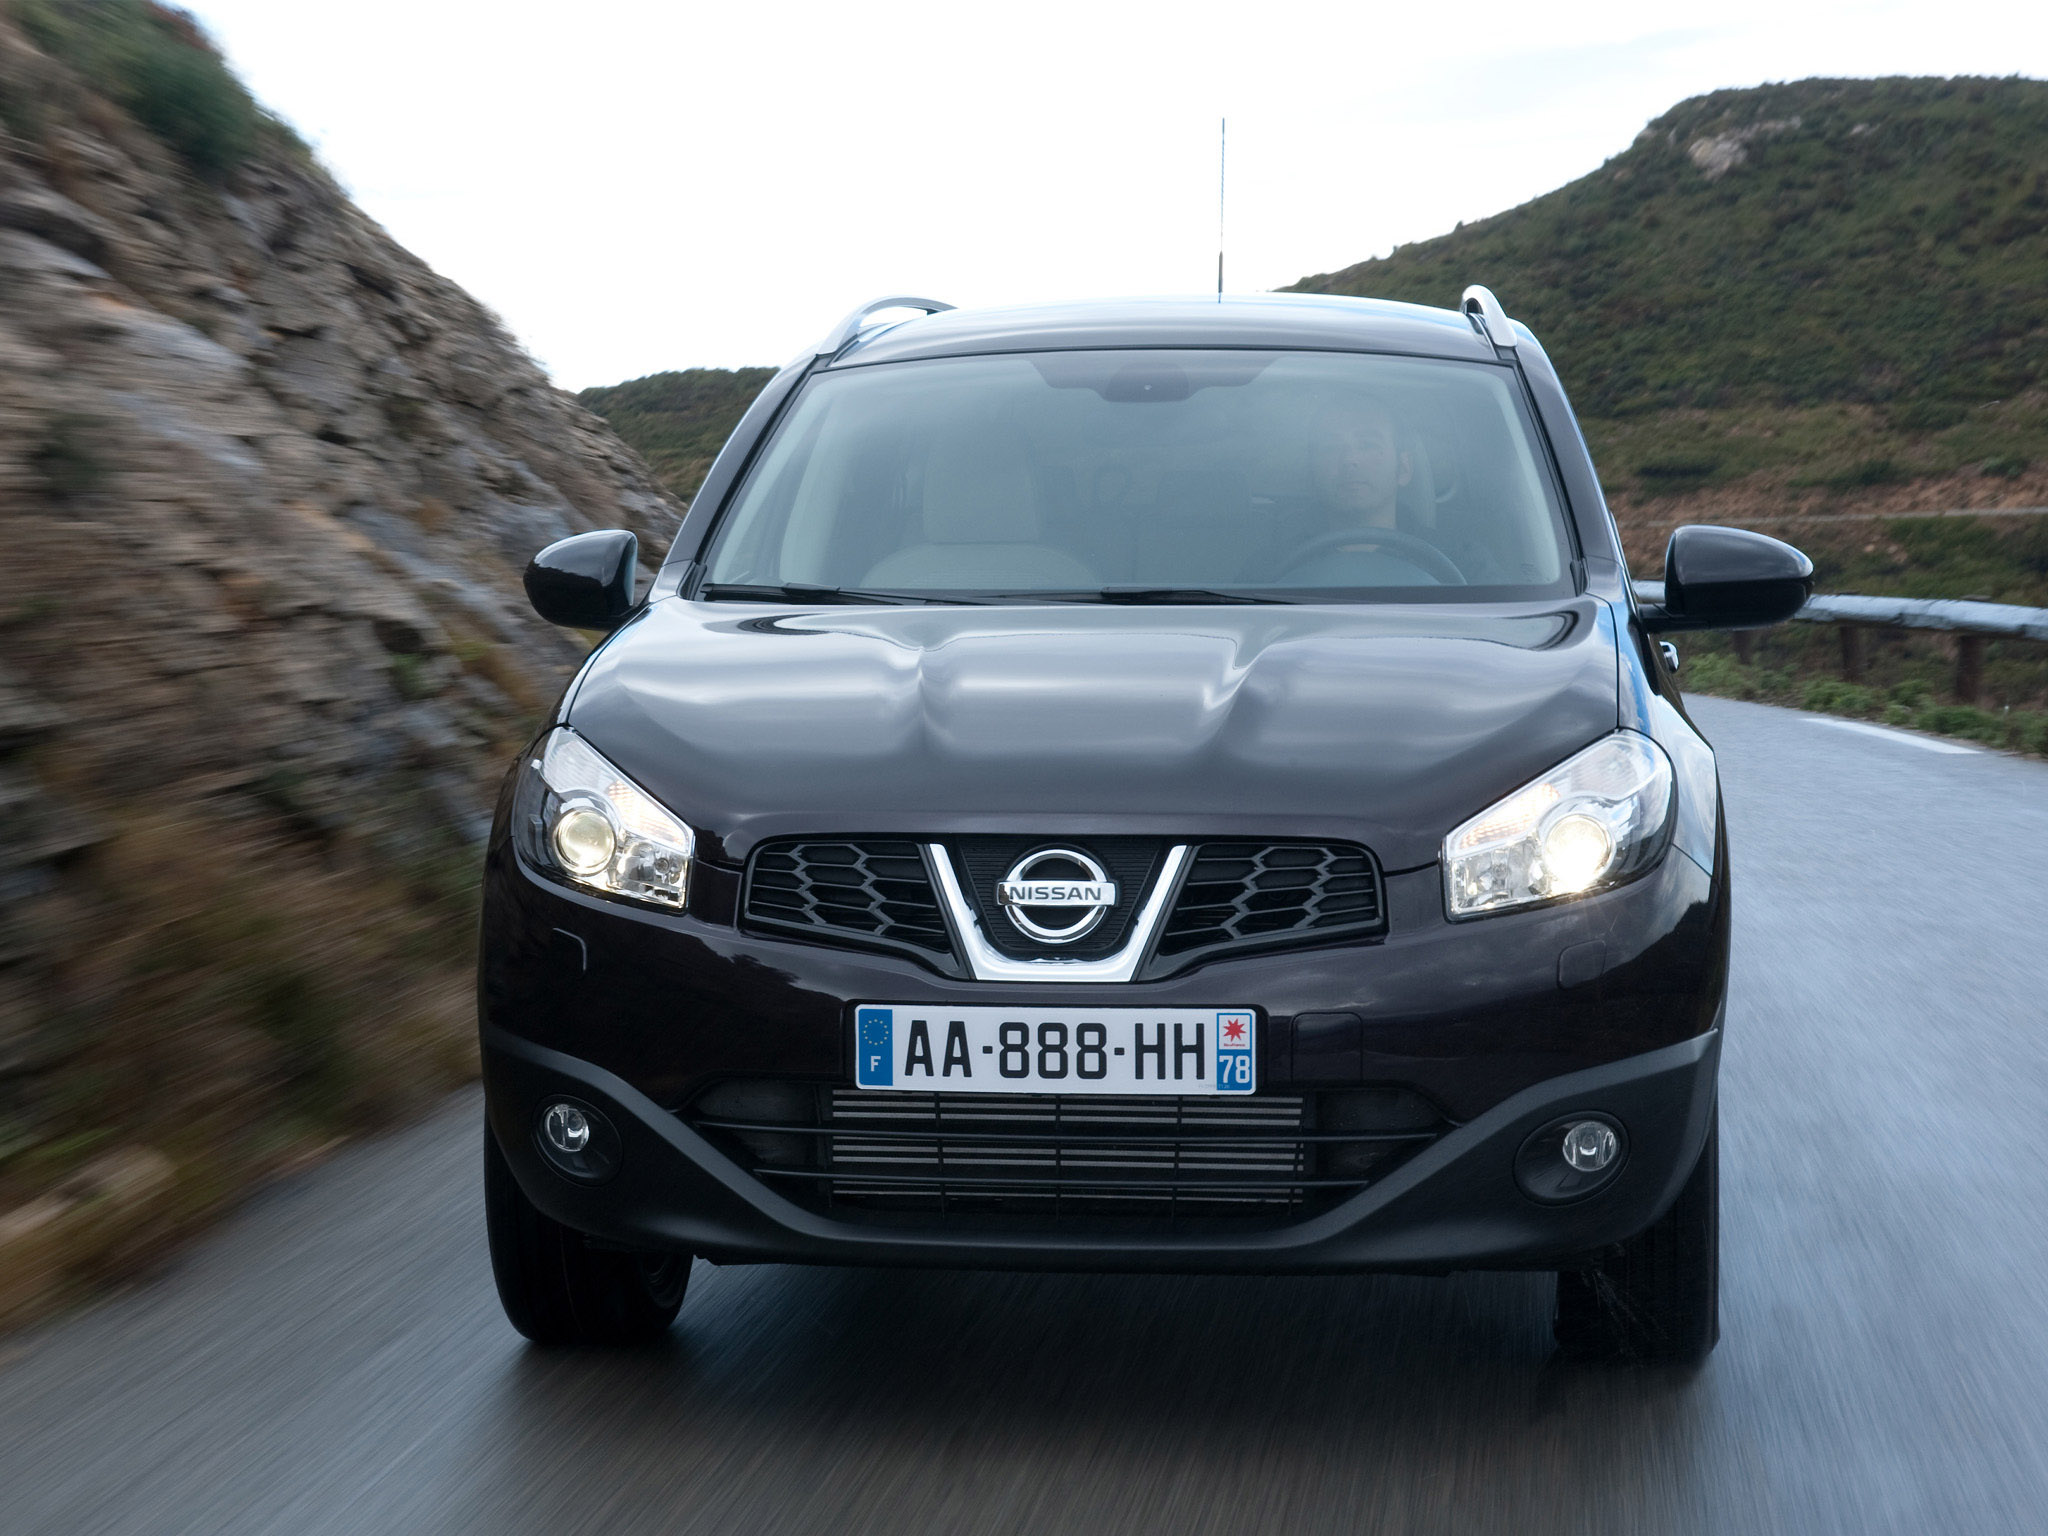 nissan qashqai 2 facelift 2010 nissan qashqai 2 facelift 2010 photo 04 car in pictures car. Black Bedroom Furniture Sets. Home Design Ideas